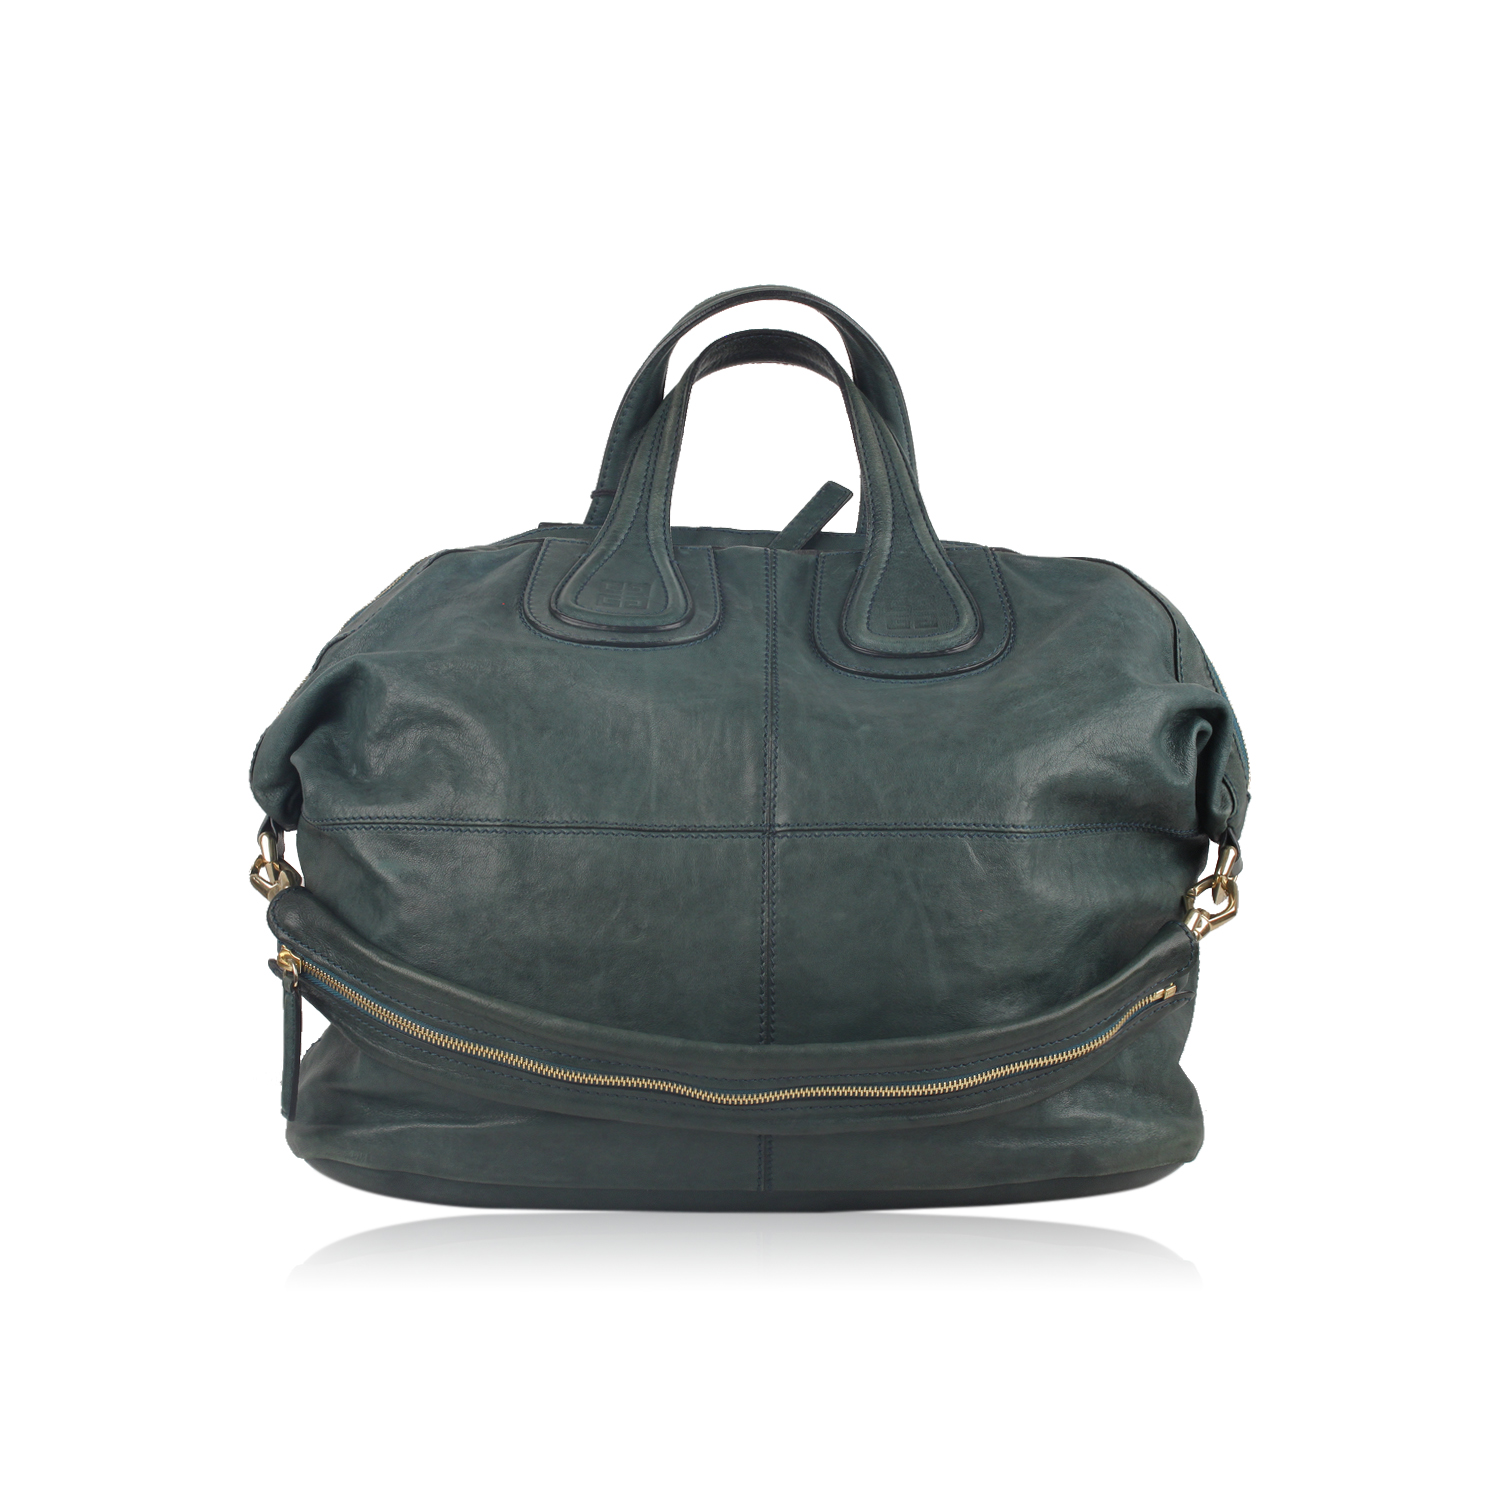 5c7c34f821 Details about Authentic Givenchy Green Leather Nightingale Tote Satchel  Shoulder Bag